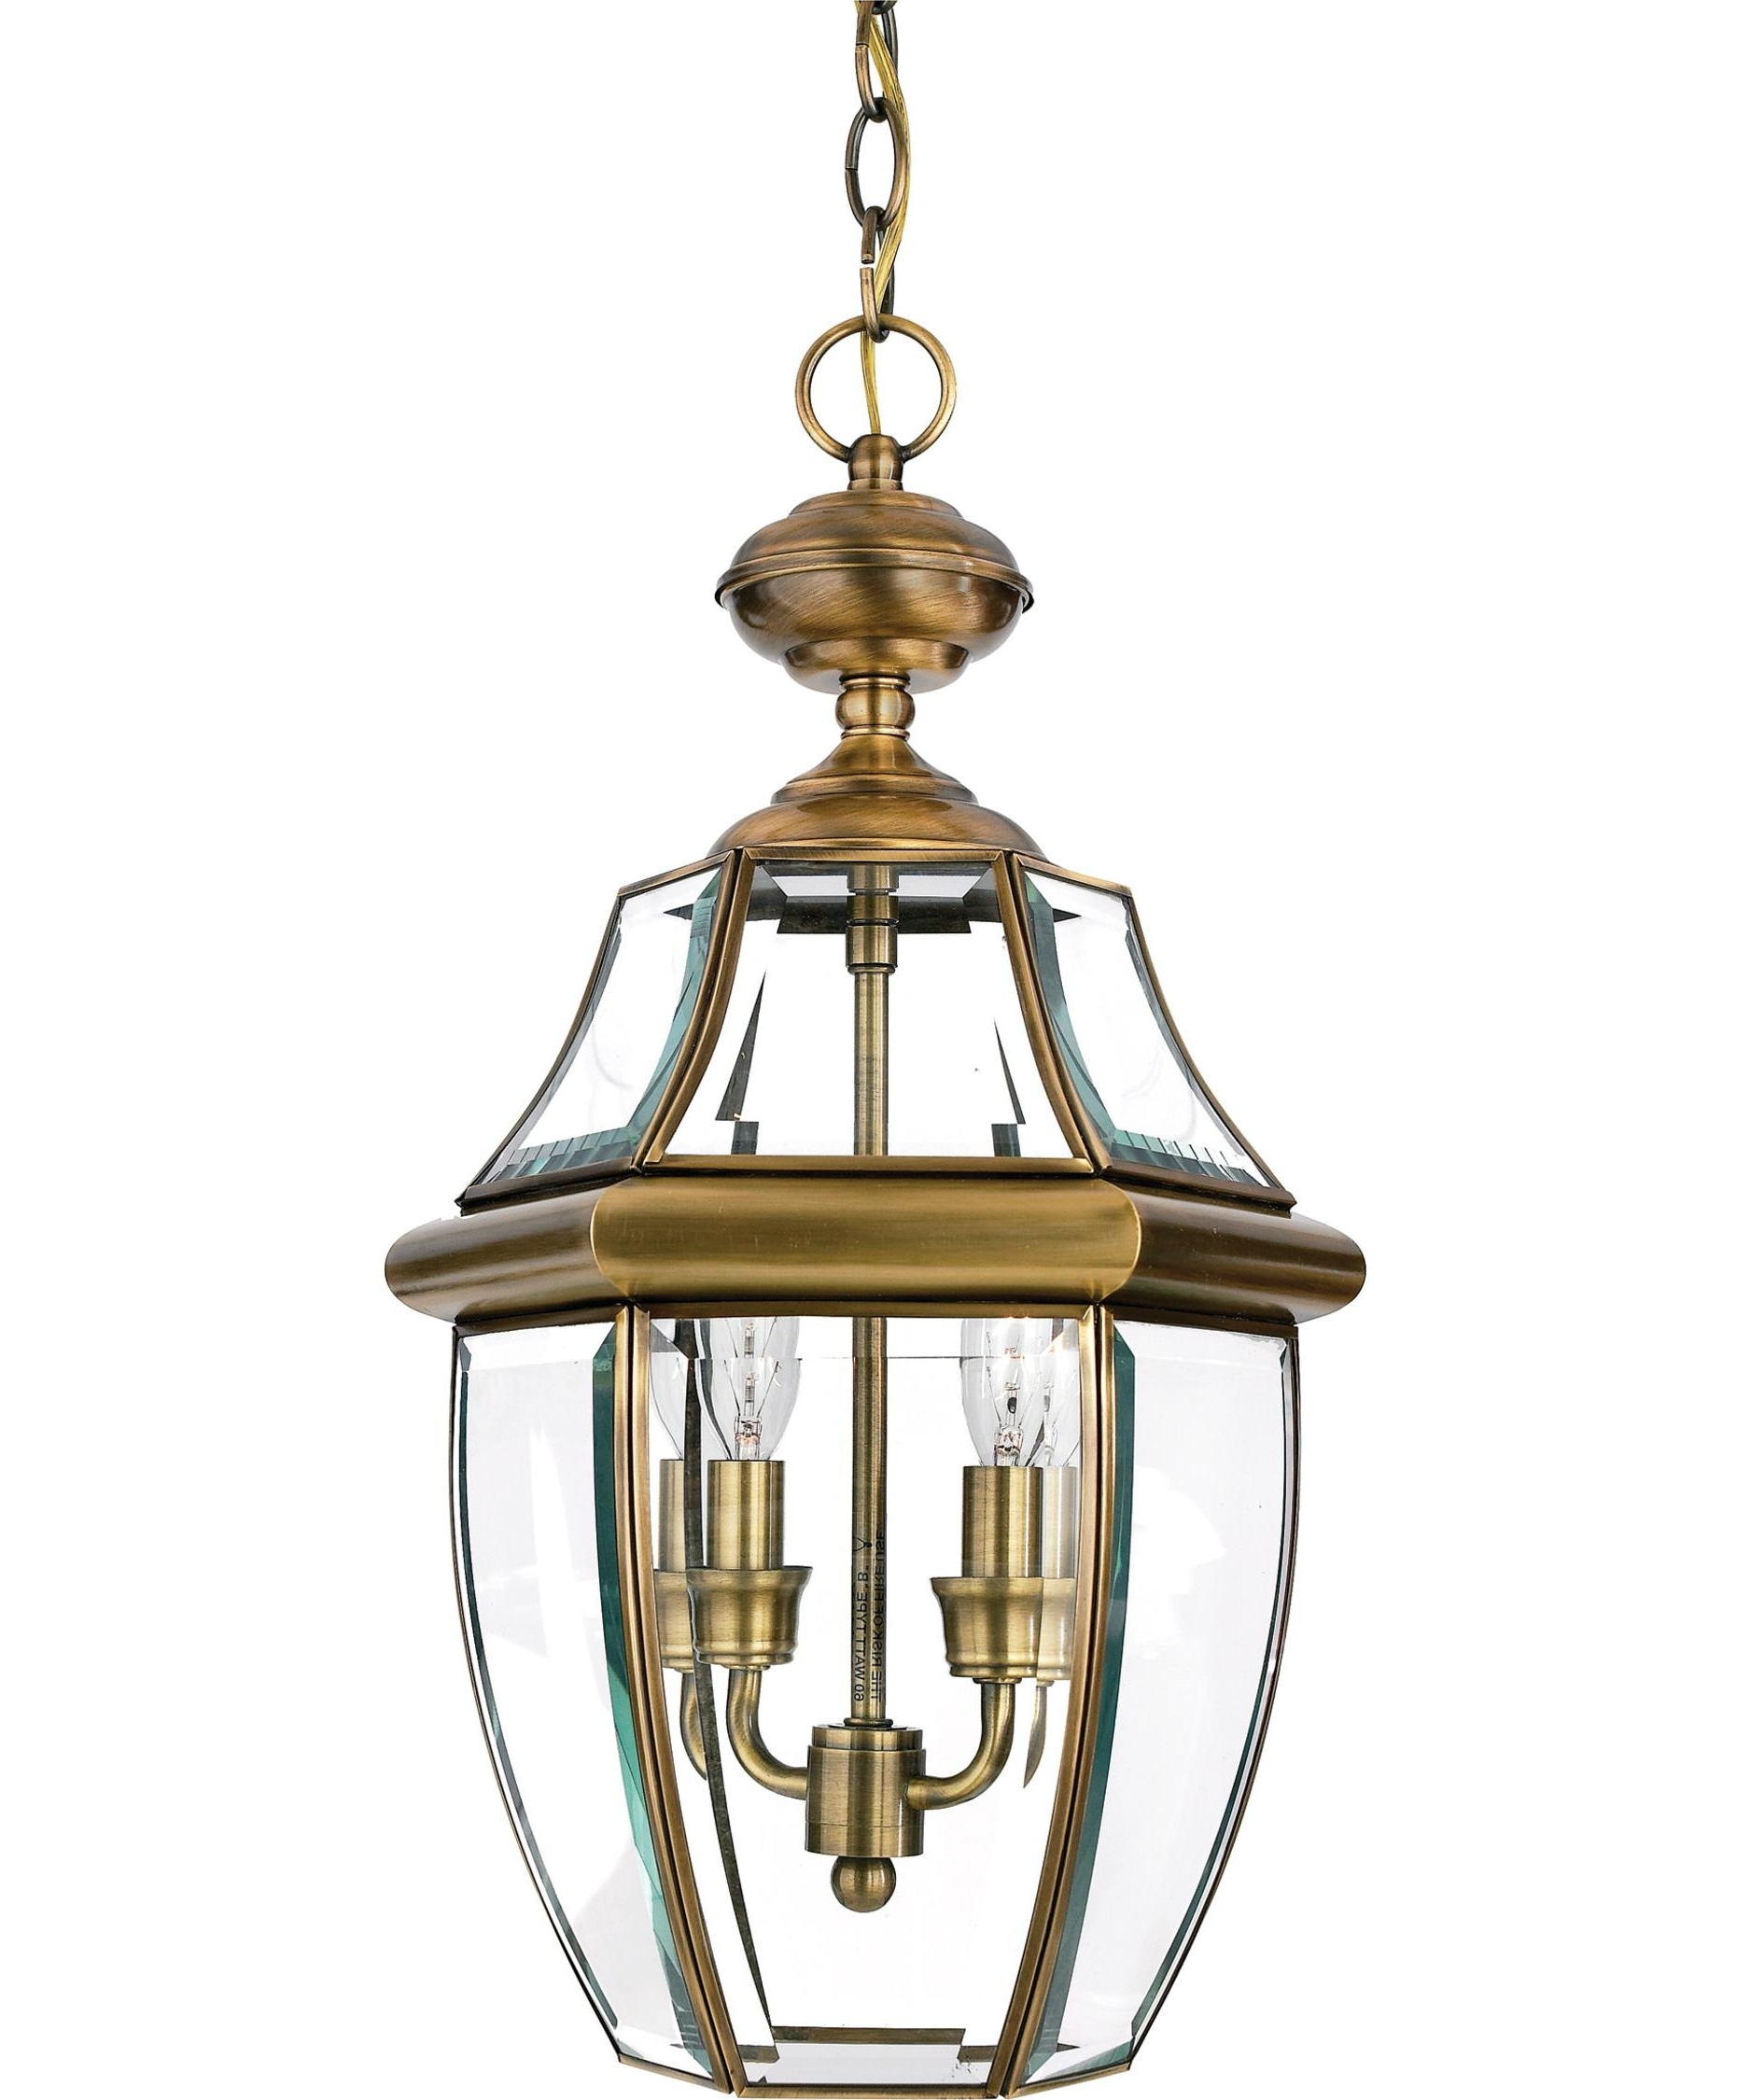 Quoizel Ny1178 Newbury 10 Inch Wide 2 Light Outdoor Hanging Lantern Intended For Preferred Quoizel Outdoor Hanging Lights (View 4 of 20)